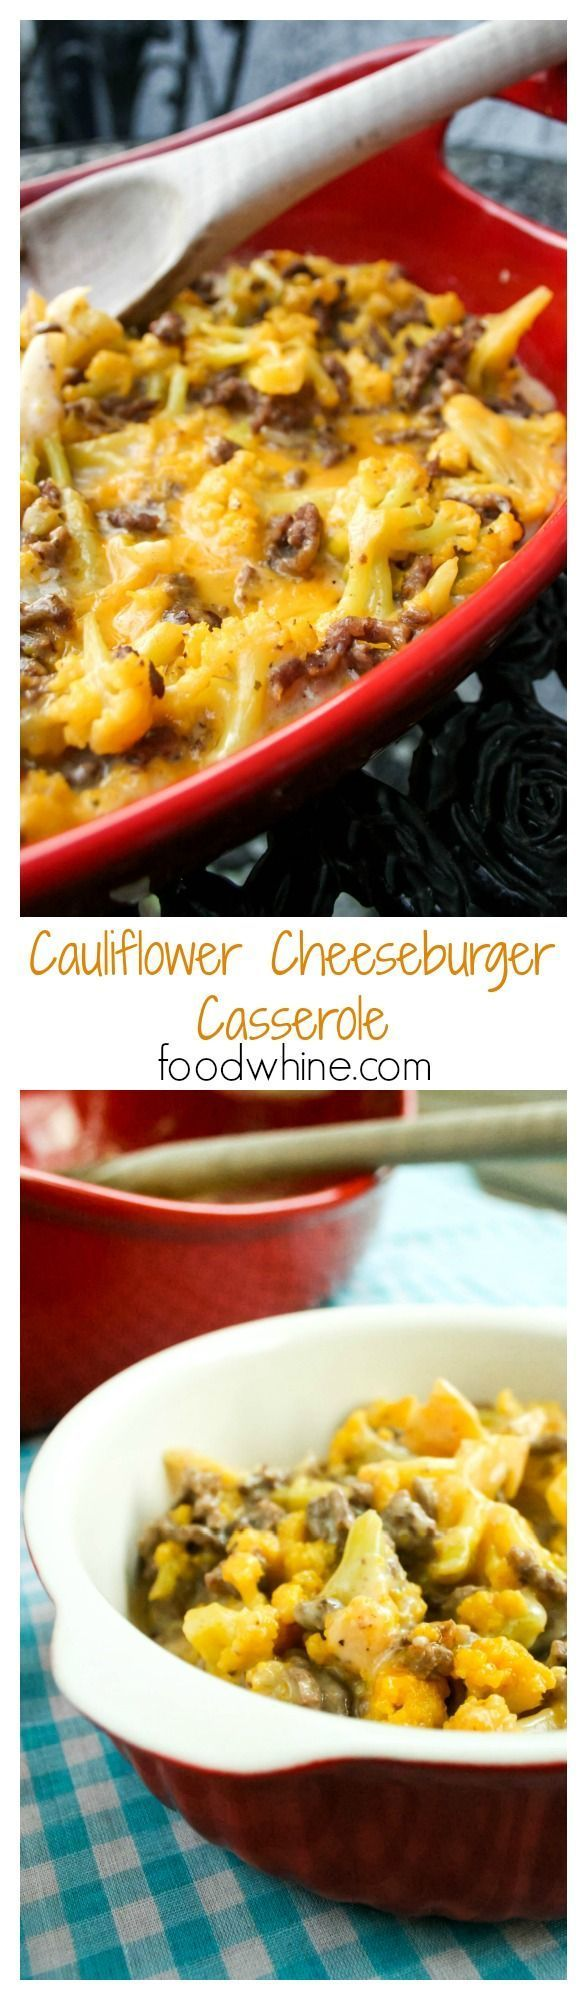 Cheeseburger Casserole Cauliflower Cheeseburger Casserole** I used seasoned flank steak instead of hamburger meat**Cauliflower Cheeseburger Casserole** I used seasoned flank steak instead of hamburger meat**